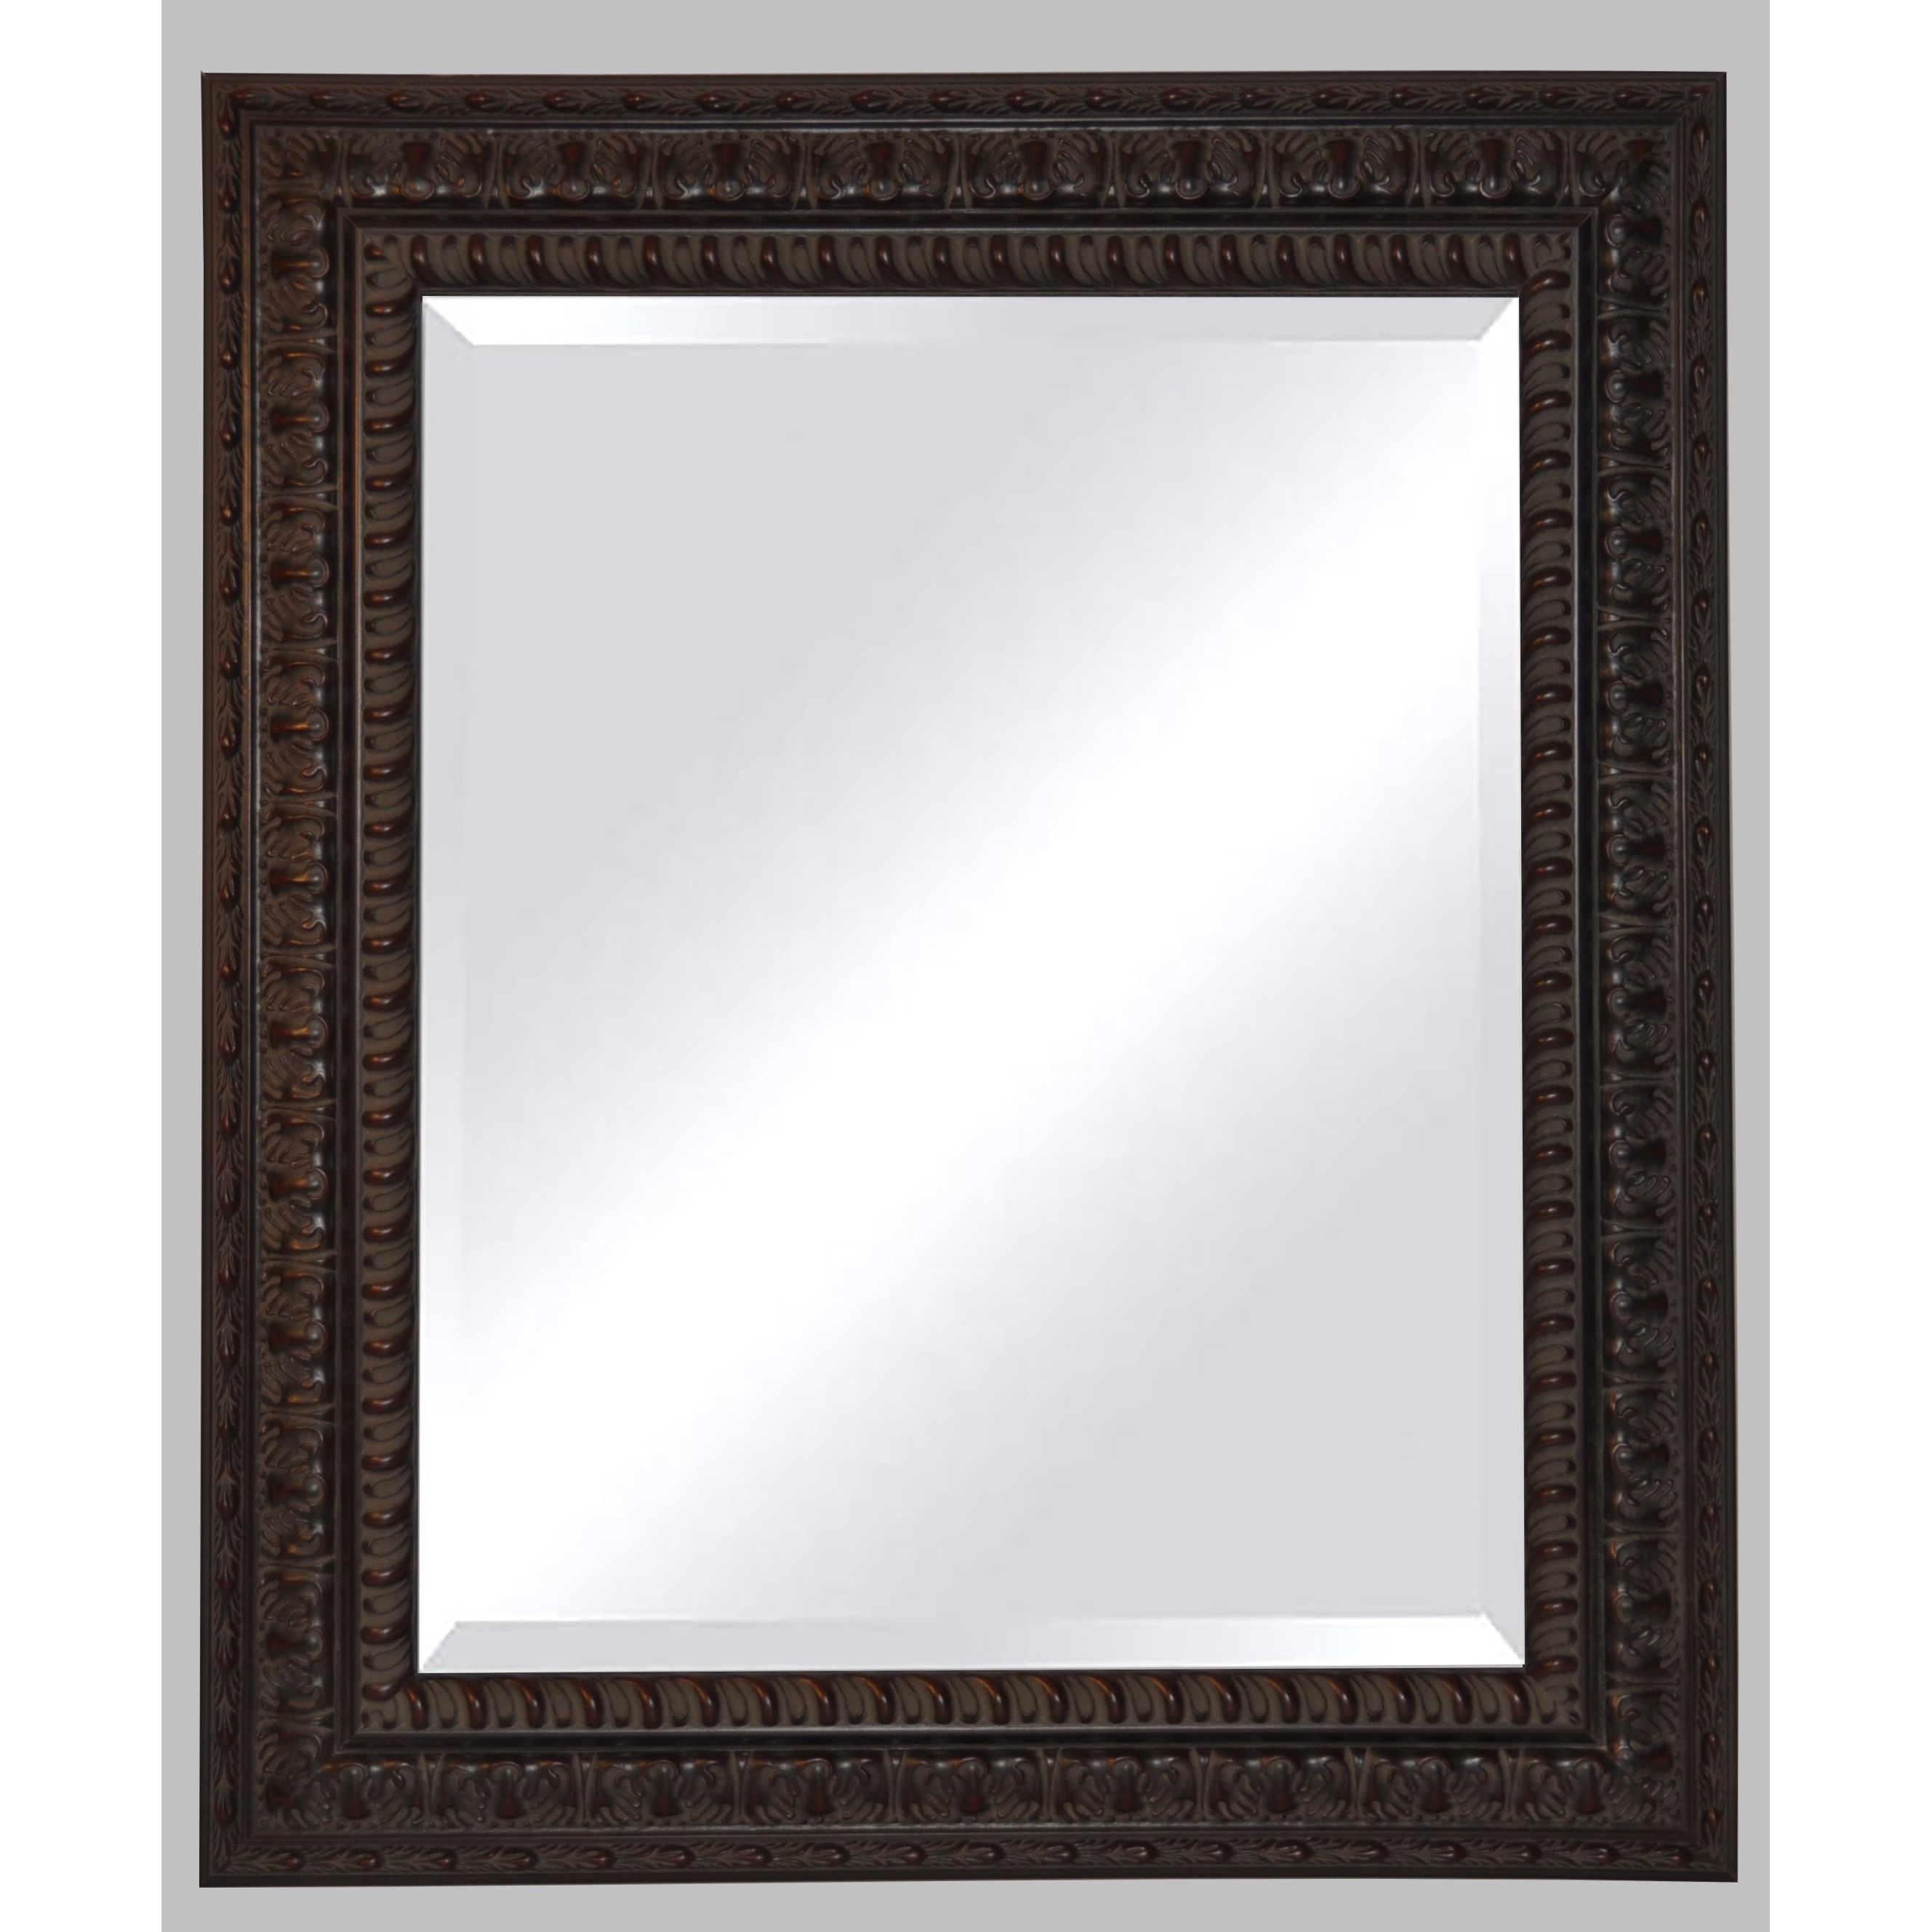 American Made Rayne Embellished Vanity Wall Mirror Rayne Throughout Embellished Mirrors (Image 3 of 15)